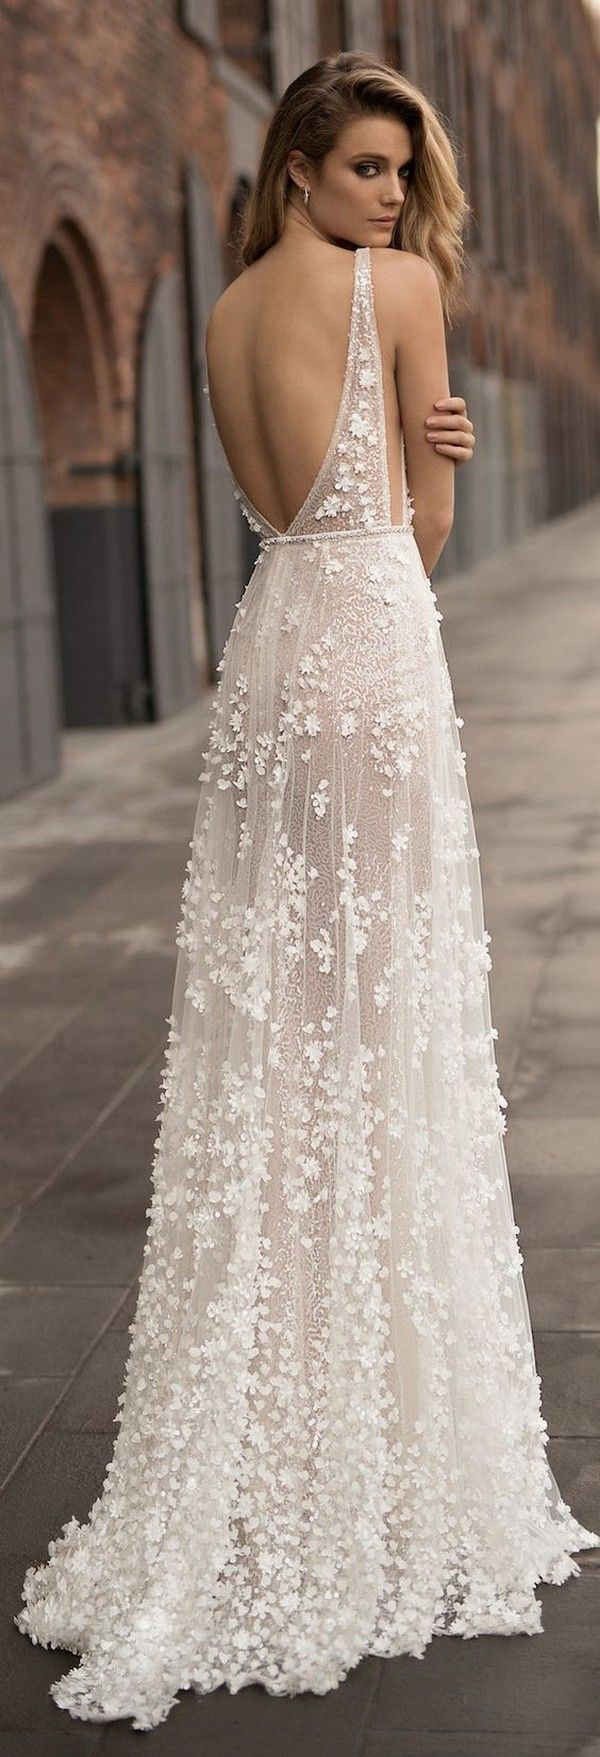 Top boho wedding dresses for trends page of boho